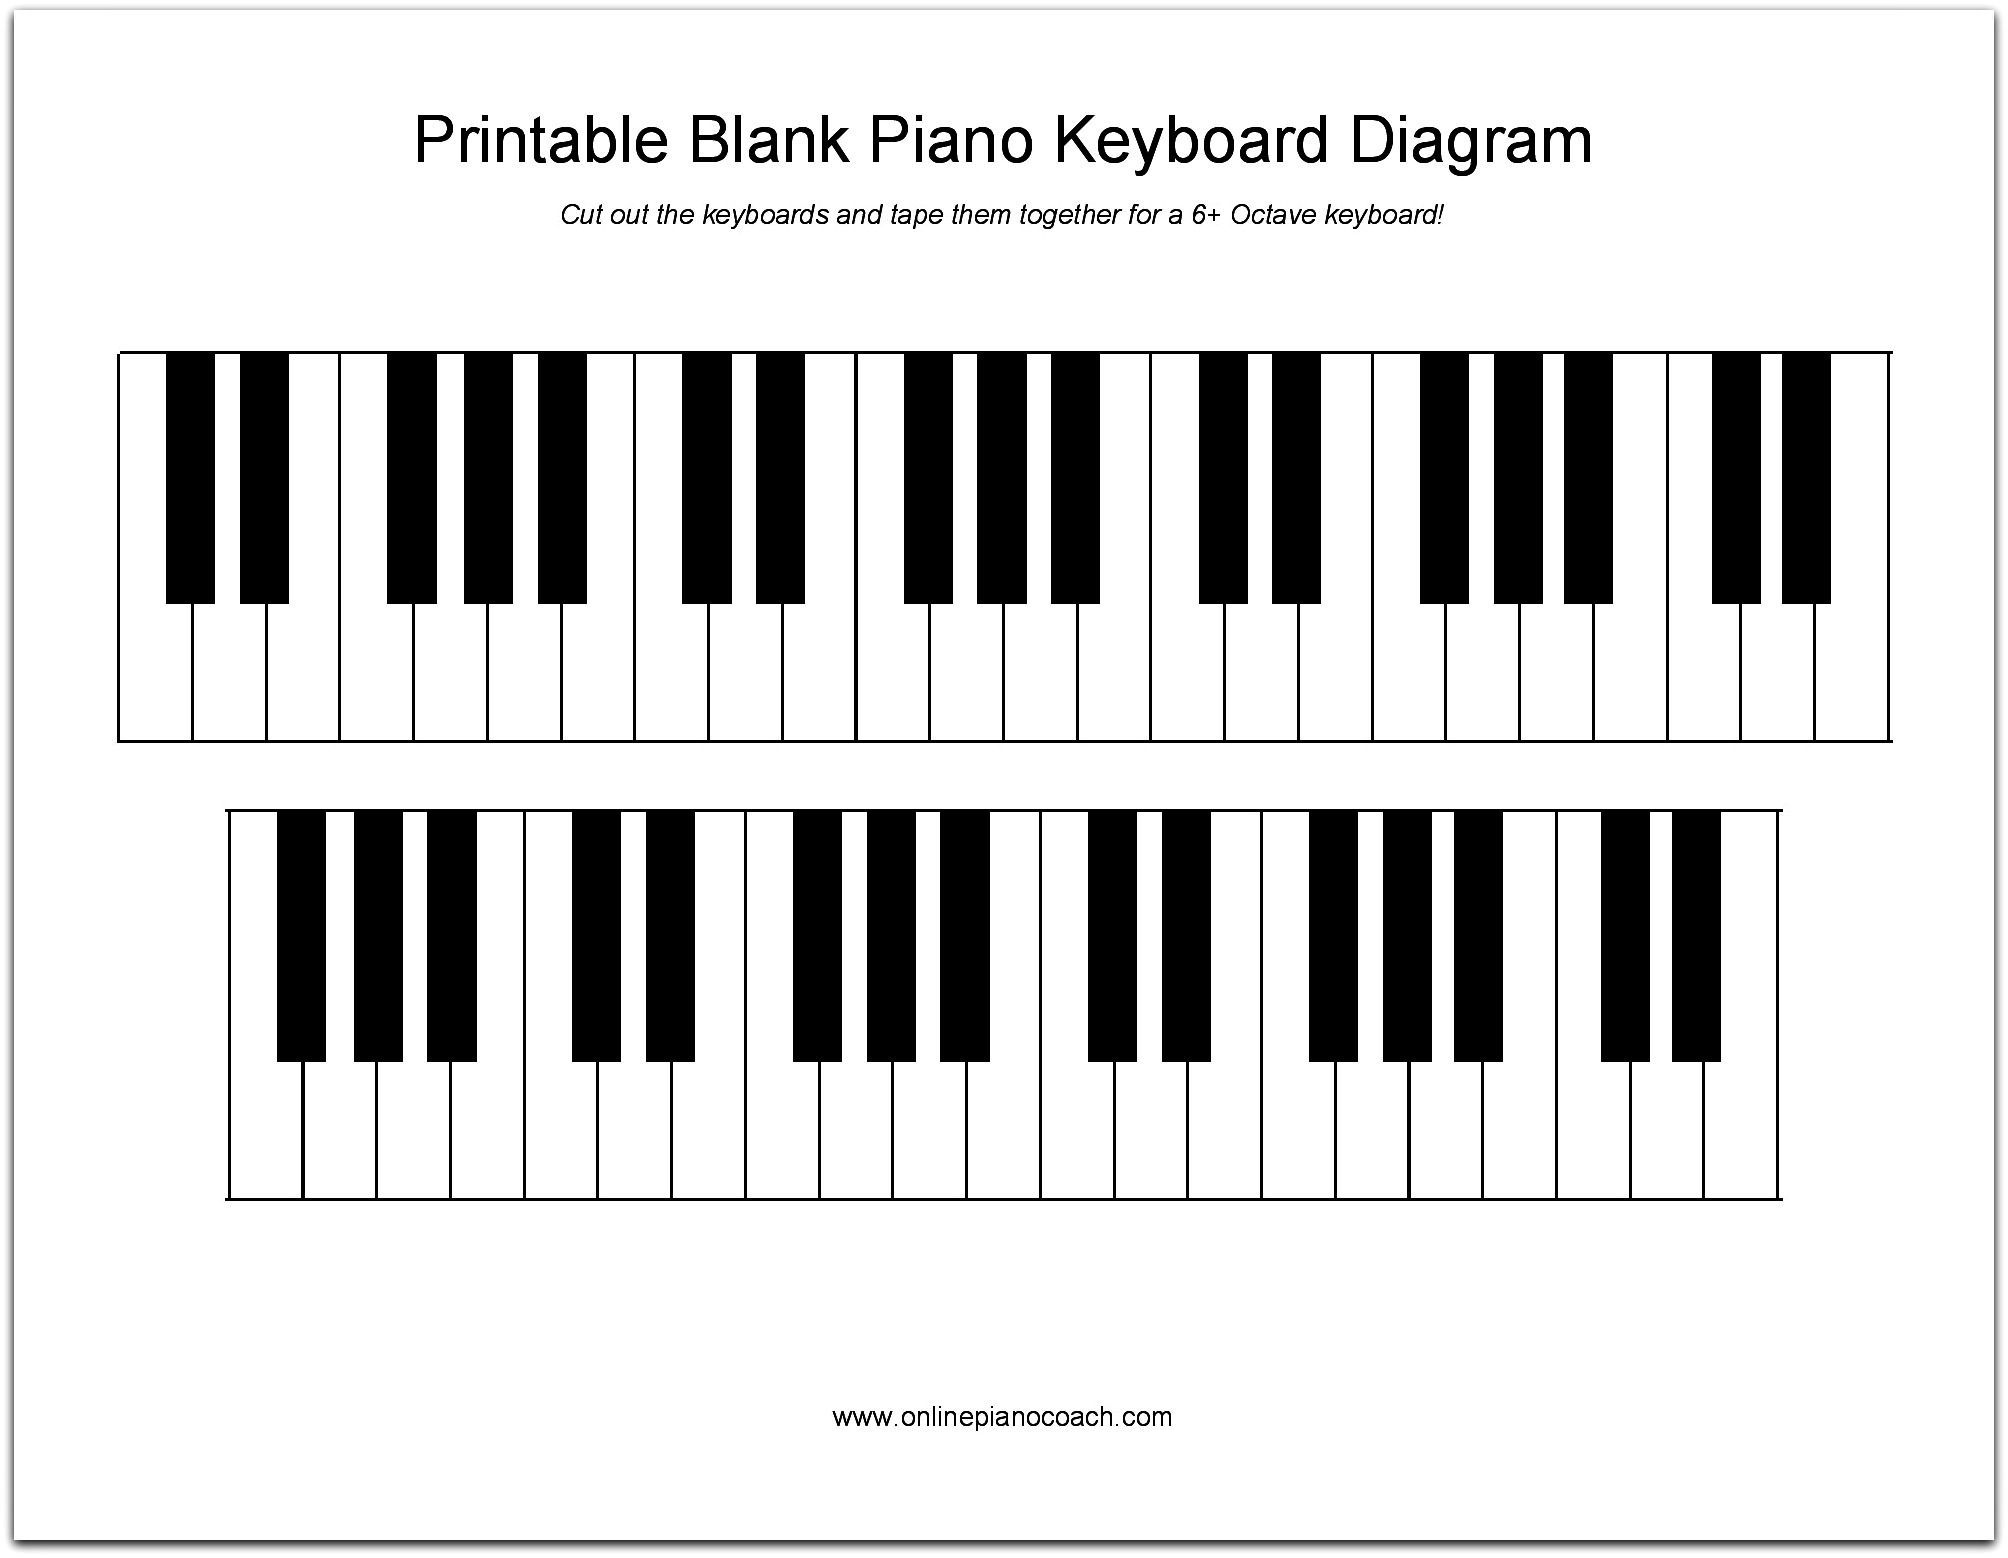 Learn note names quick and easy with free, printable piano